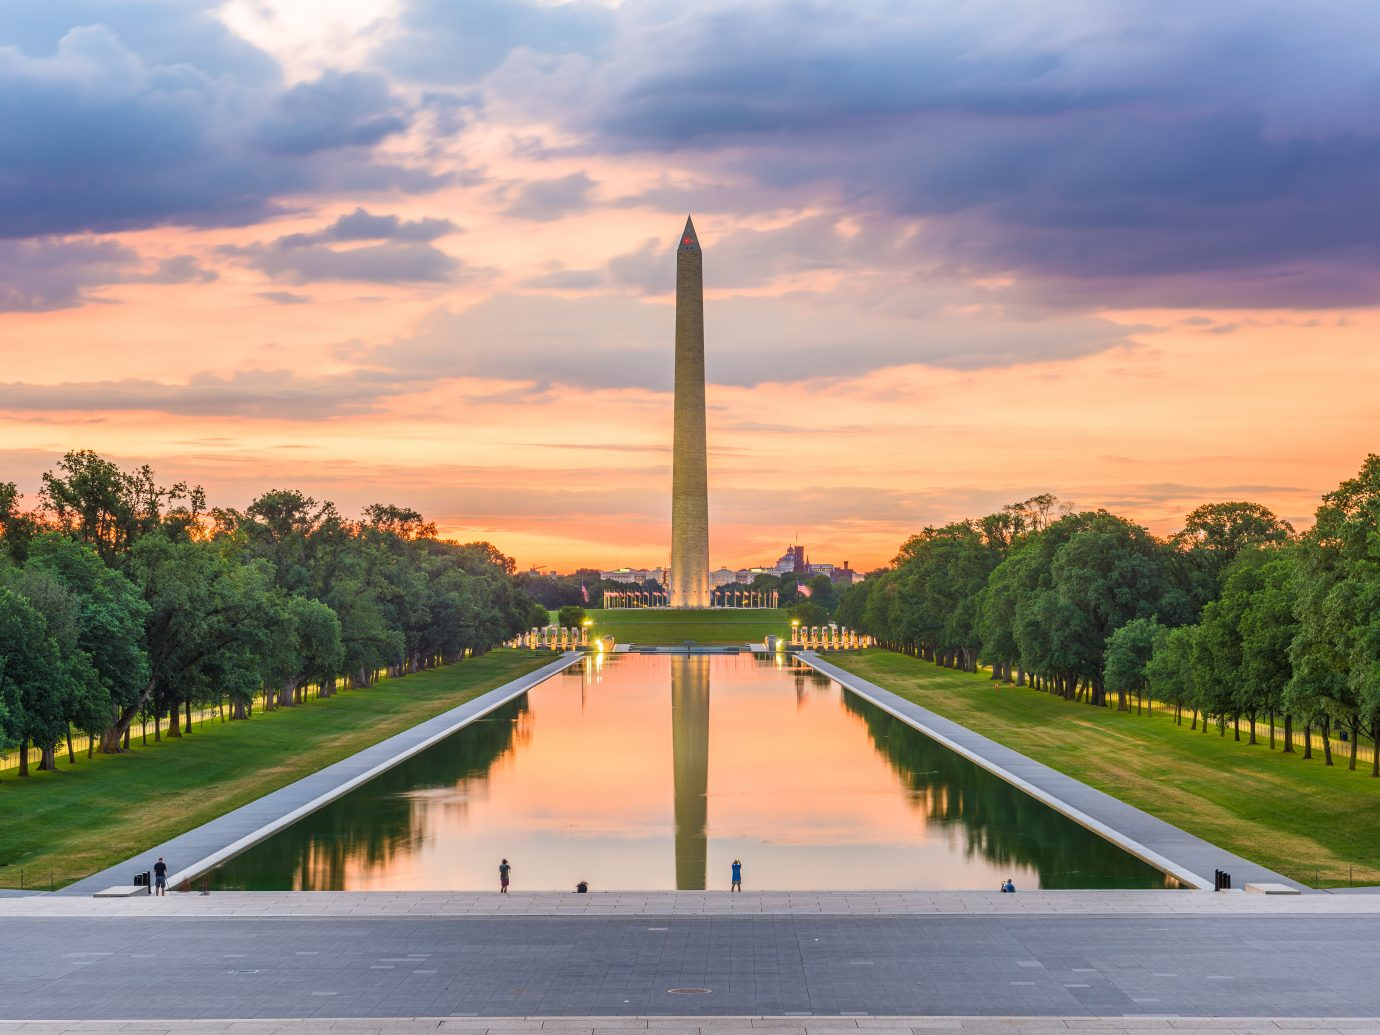 Washington Monument on the Reflecting Pool in Washington, D.C. at dawn.